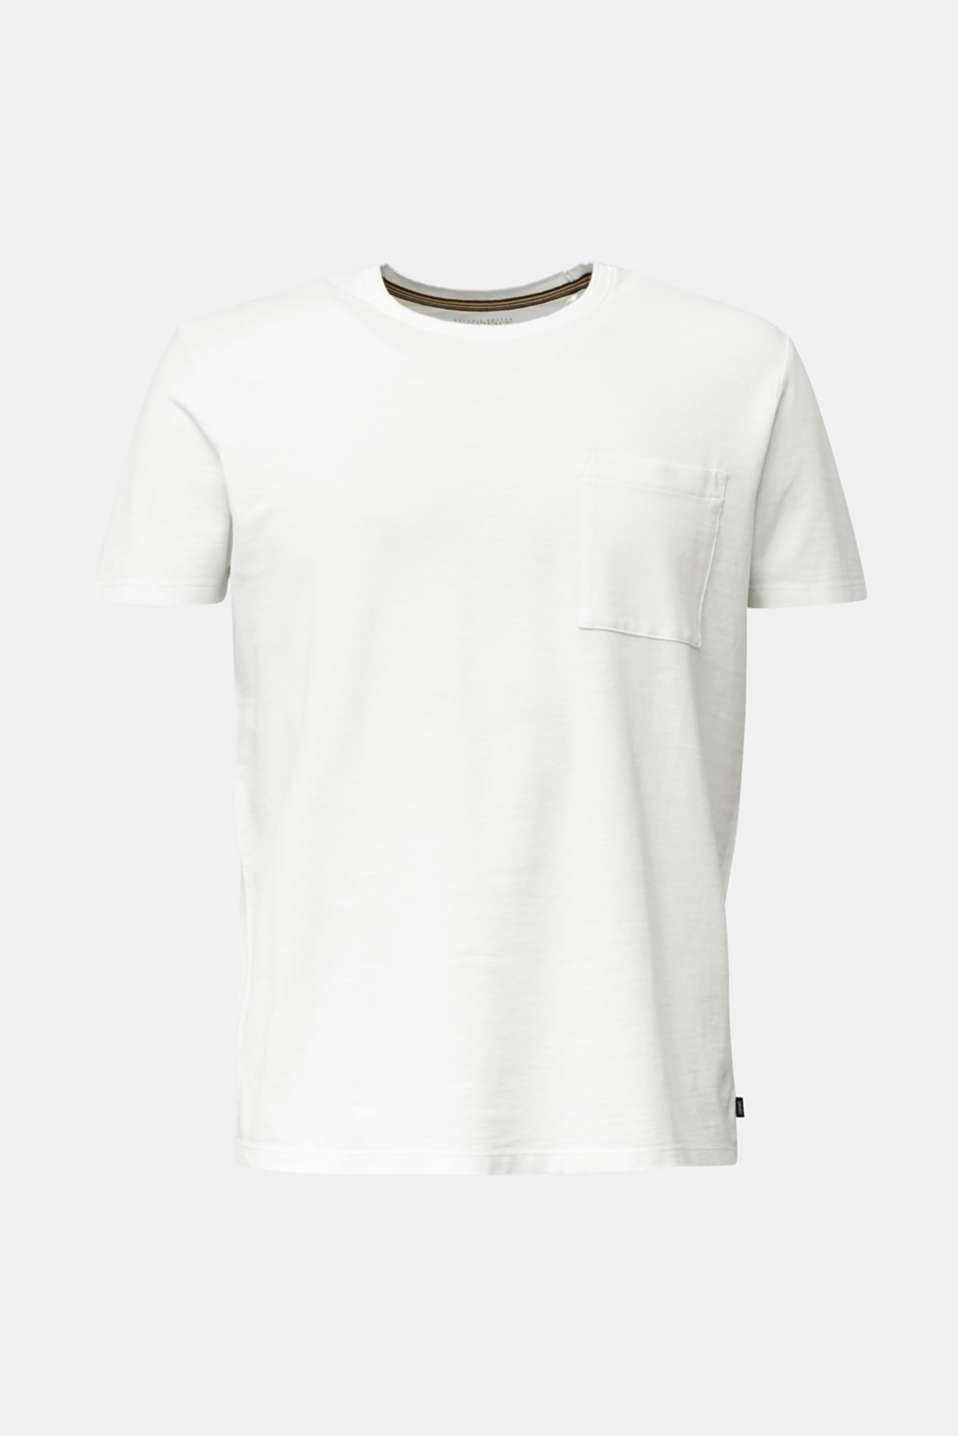 ARCHROMA piqué T-shirt, 100% organic cotton, OFF WHITE 2, detail image number 8